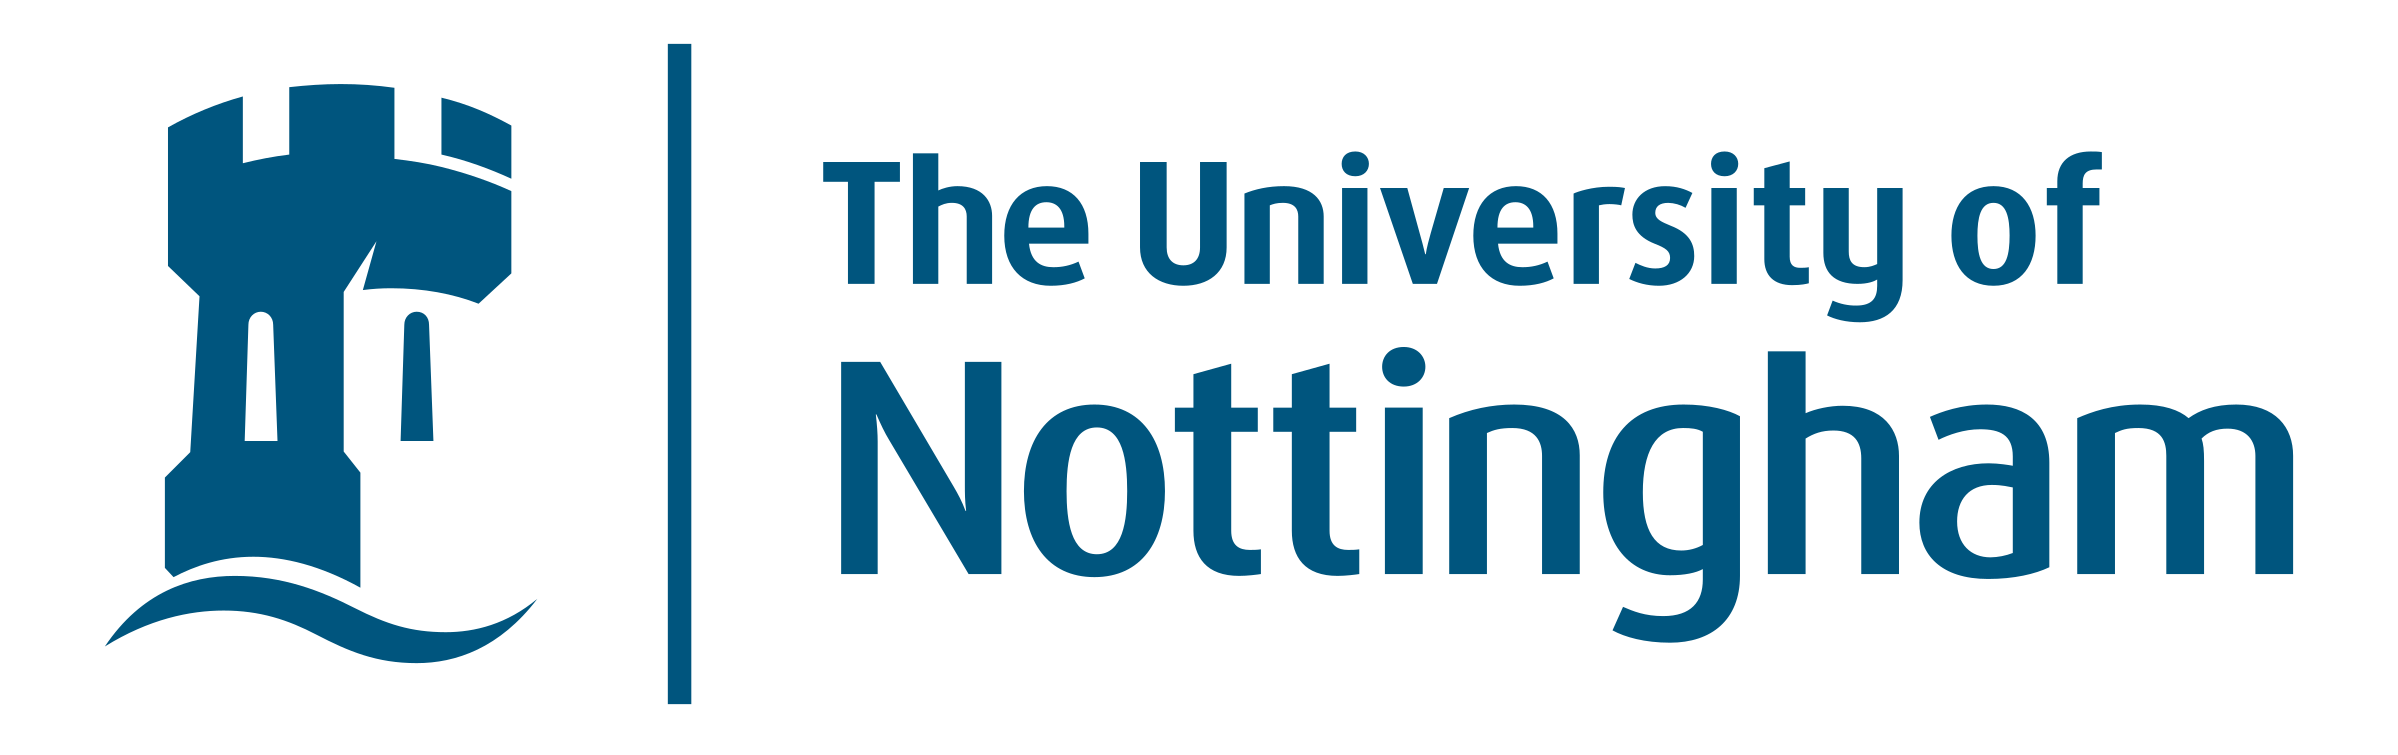 the-university-of-nottingham-1-logo-png-transparent.png